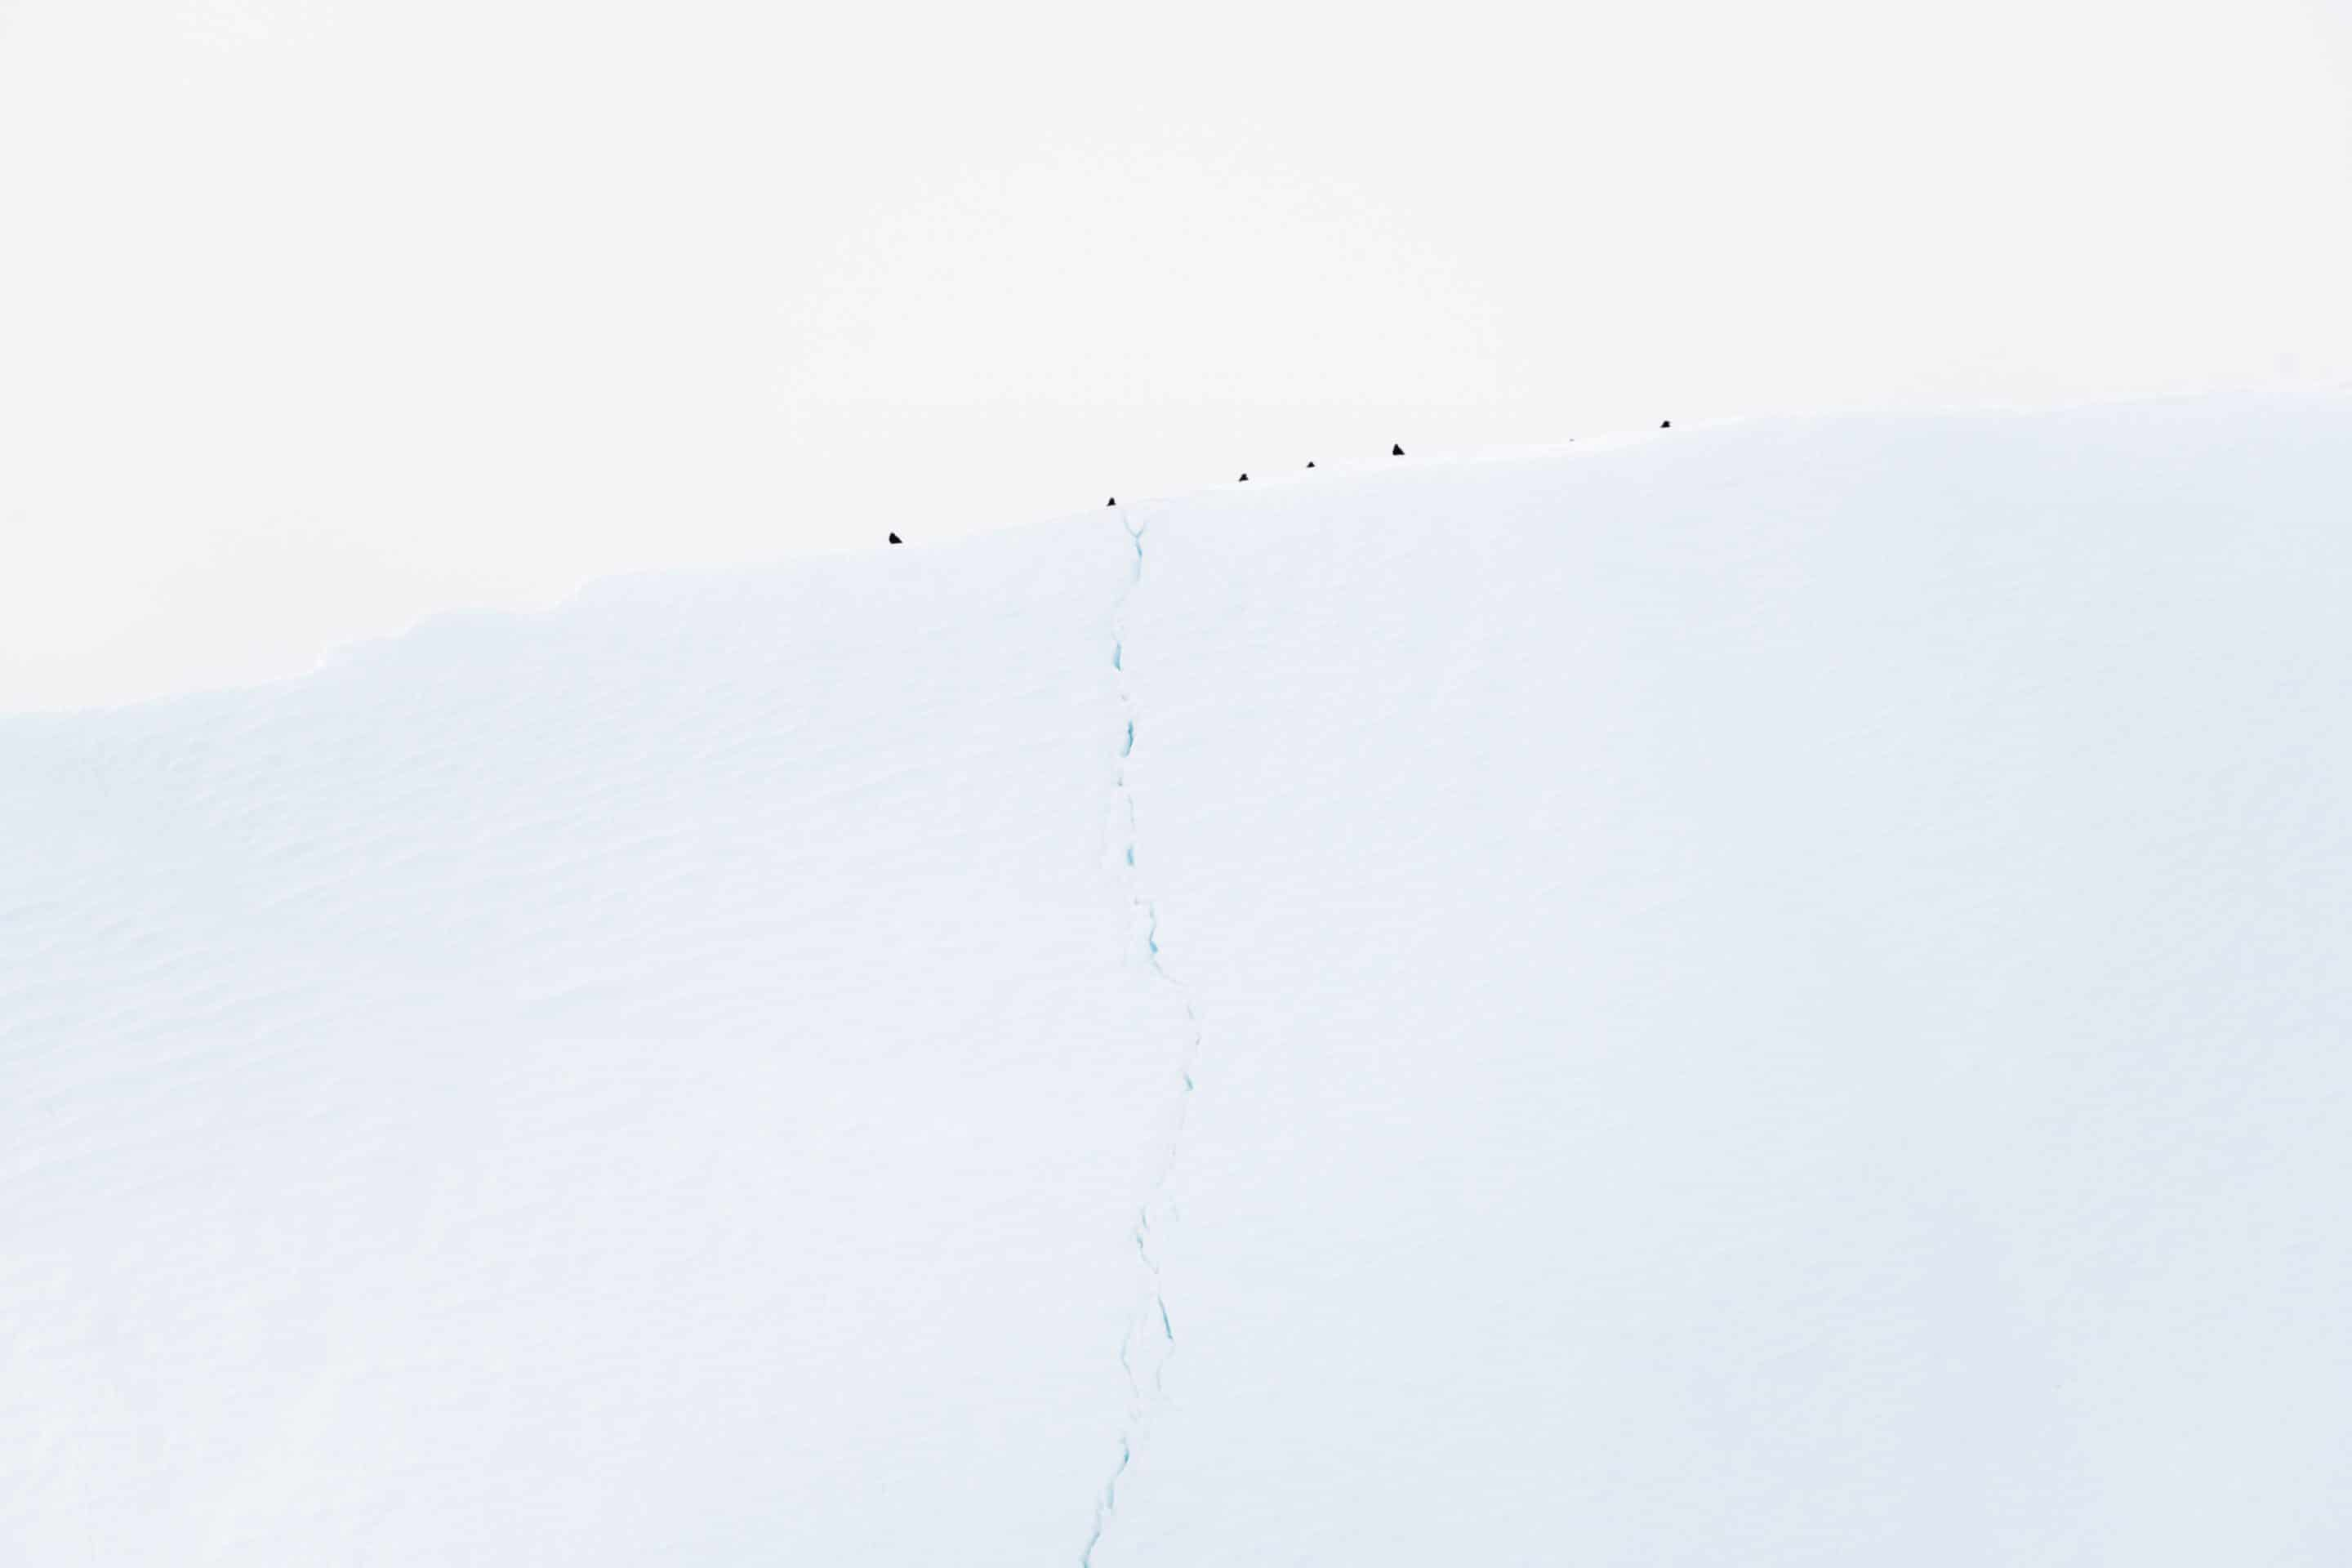 Minimalist fine art photographs of icebergs in Disko Bay, western Greenland by Michael Schauer